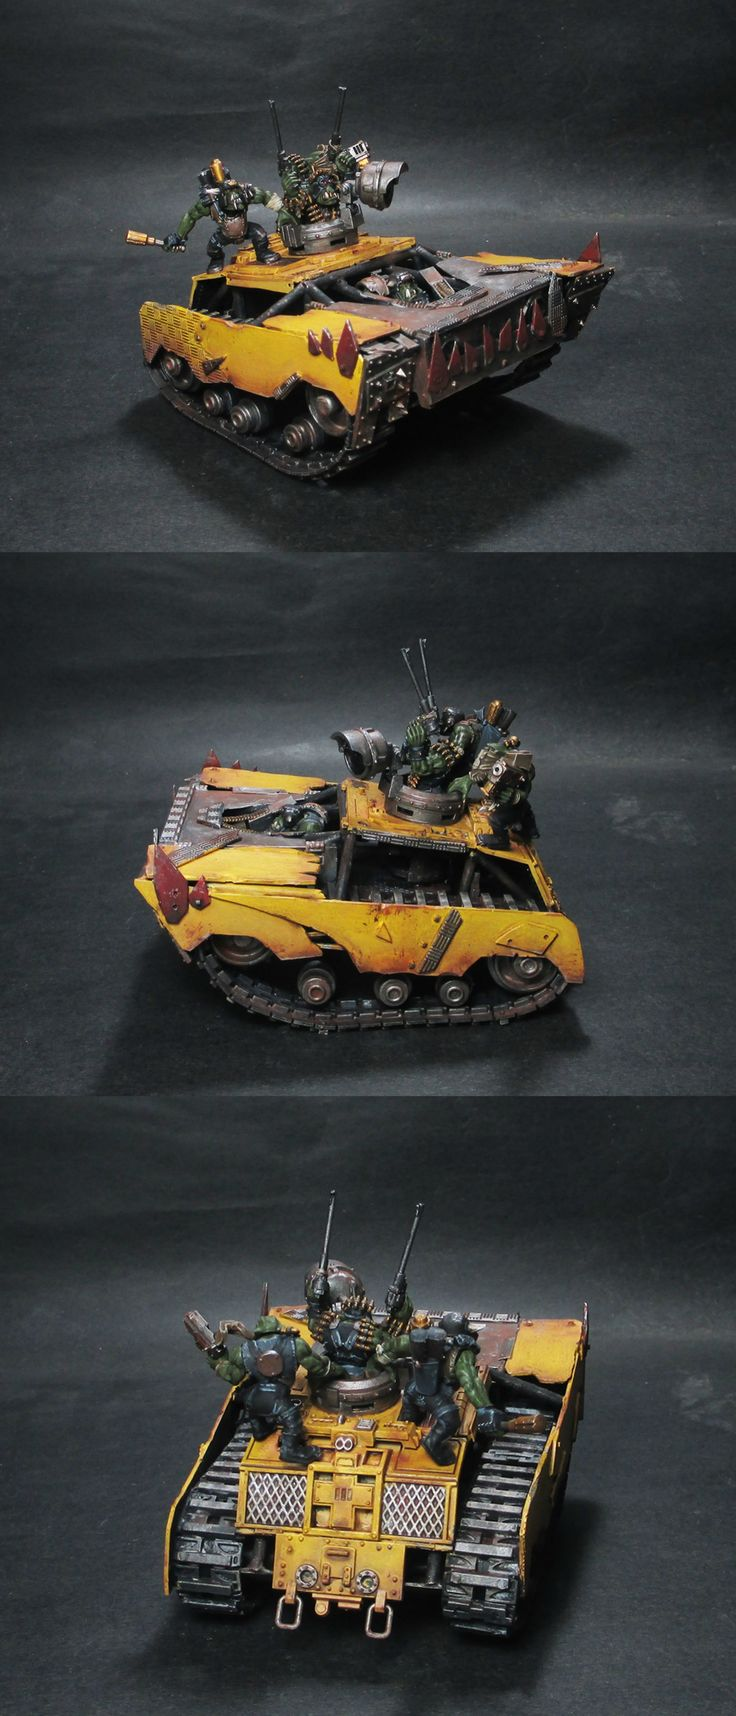 Page 1 of 3 - Da mad vehicles of da Fury Road! (Gigahorse, Peacemaker, & Big - posted in MEK'S GARAGE: Been hard at work at the other Mad Max: Fury Road vehicles. Here we have Da Dakka Farmer, (a.k.a The Bullet Farmer) in his Peacemaker tank. (Peacemaka), Rictus Erectus monster truck Big Foot. (Da Foot of Gork), and Immortan Jorks Gigahorse!    It is by my hand, you will rise from the ashes of this world!       I am da scales of justice, konducta of da choir of d...